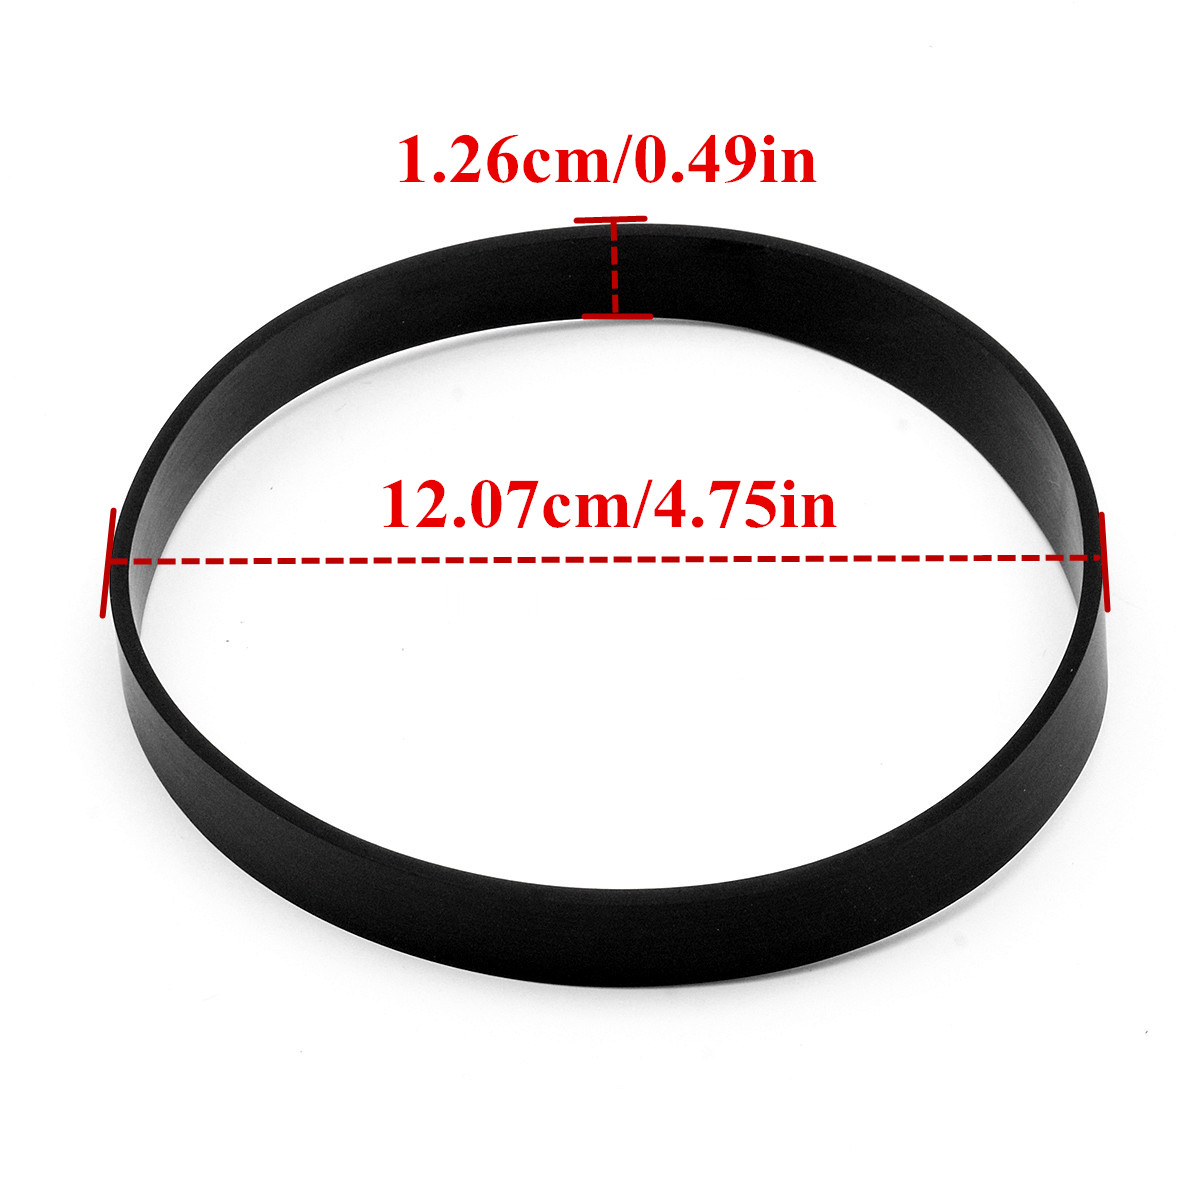 Vacuum Cleaner Belt For Bissell Upright Vacuum Style 3031120 & 32074 Replacement